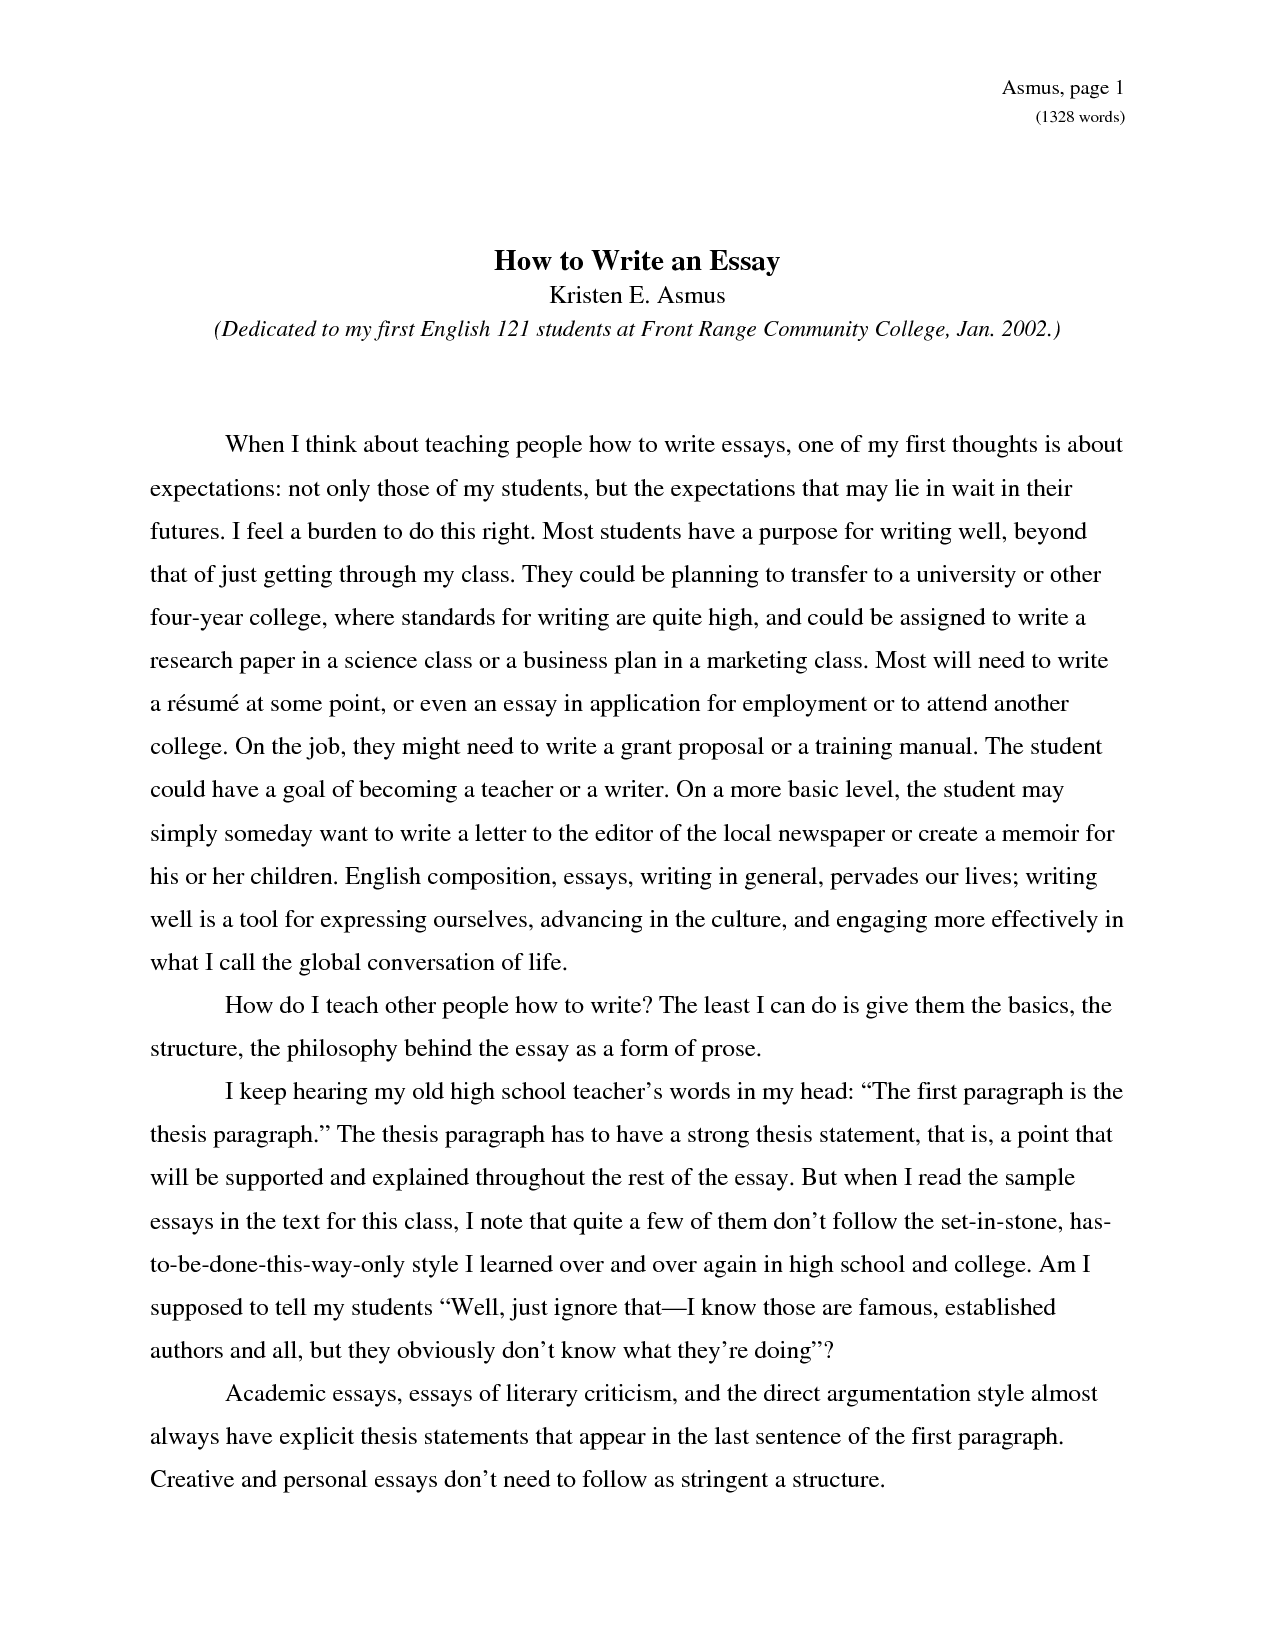 How to write a good application essay essay